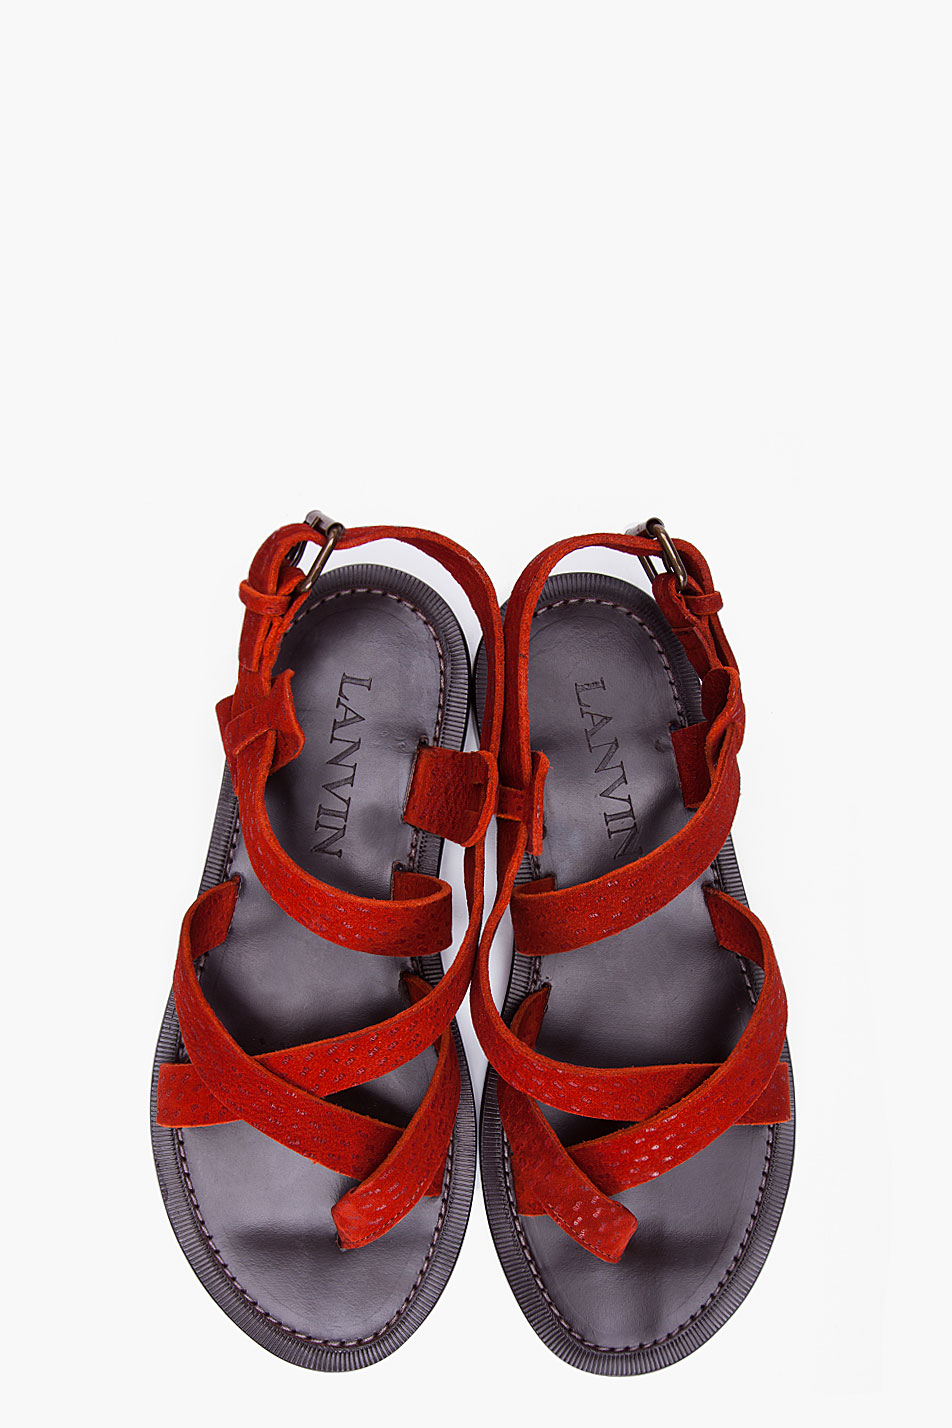 06b87776a1662 Lyst - Lanvin Rust Red Bride Sandals in Red for Men